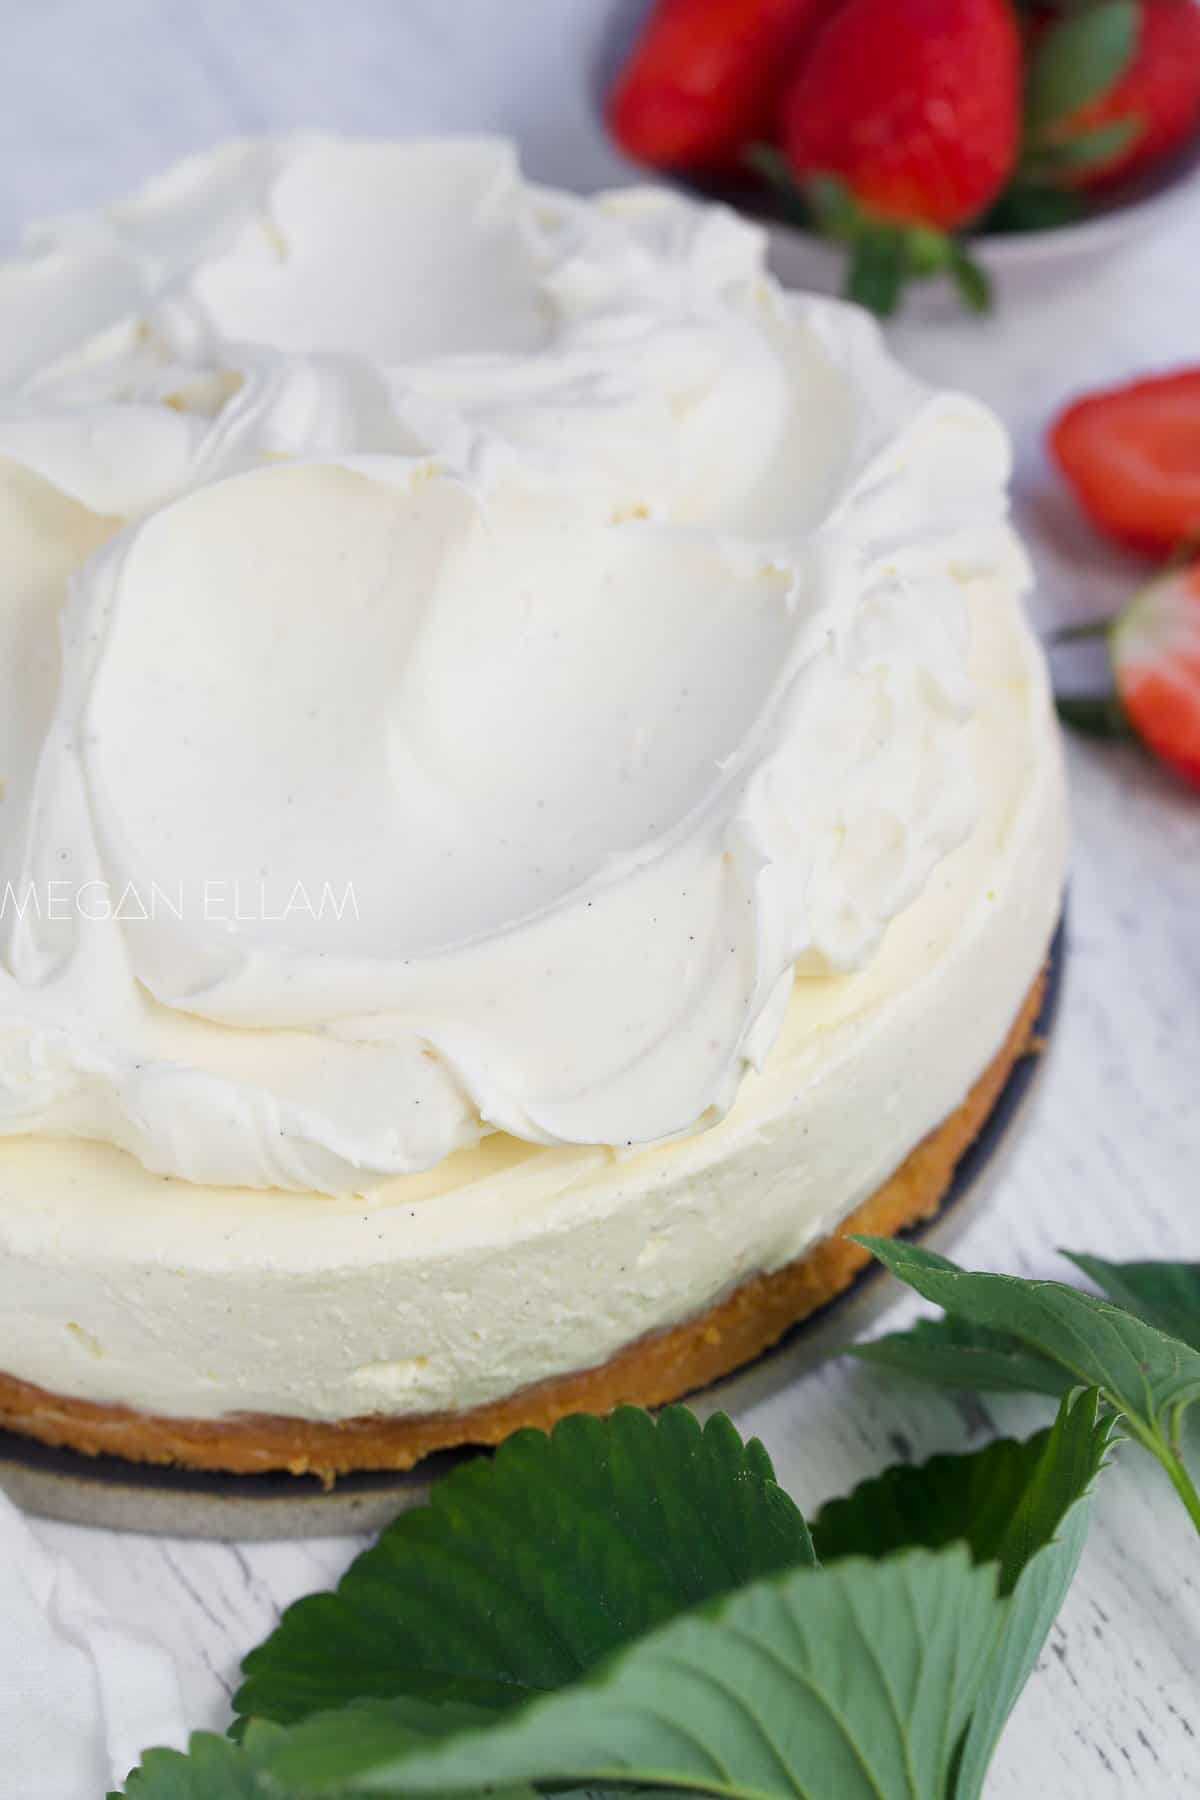 Cream on top of a cheesecake.